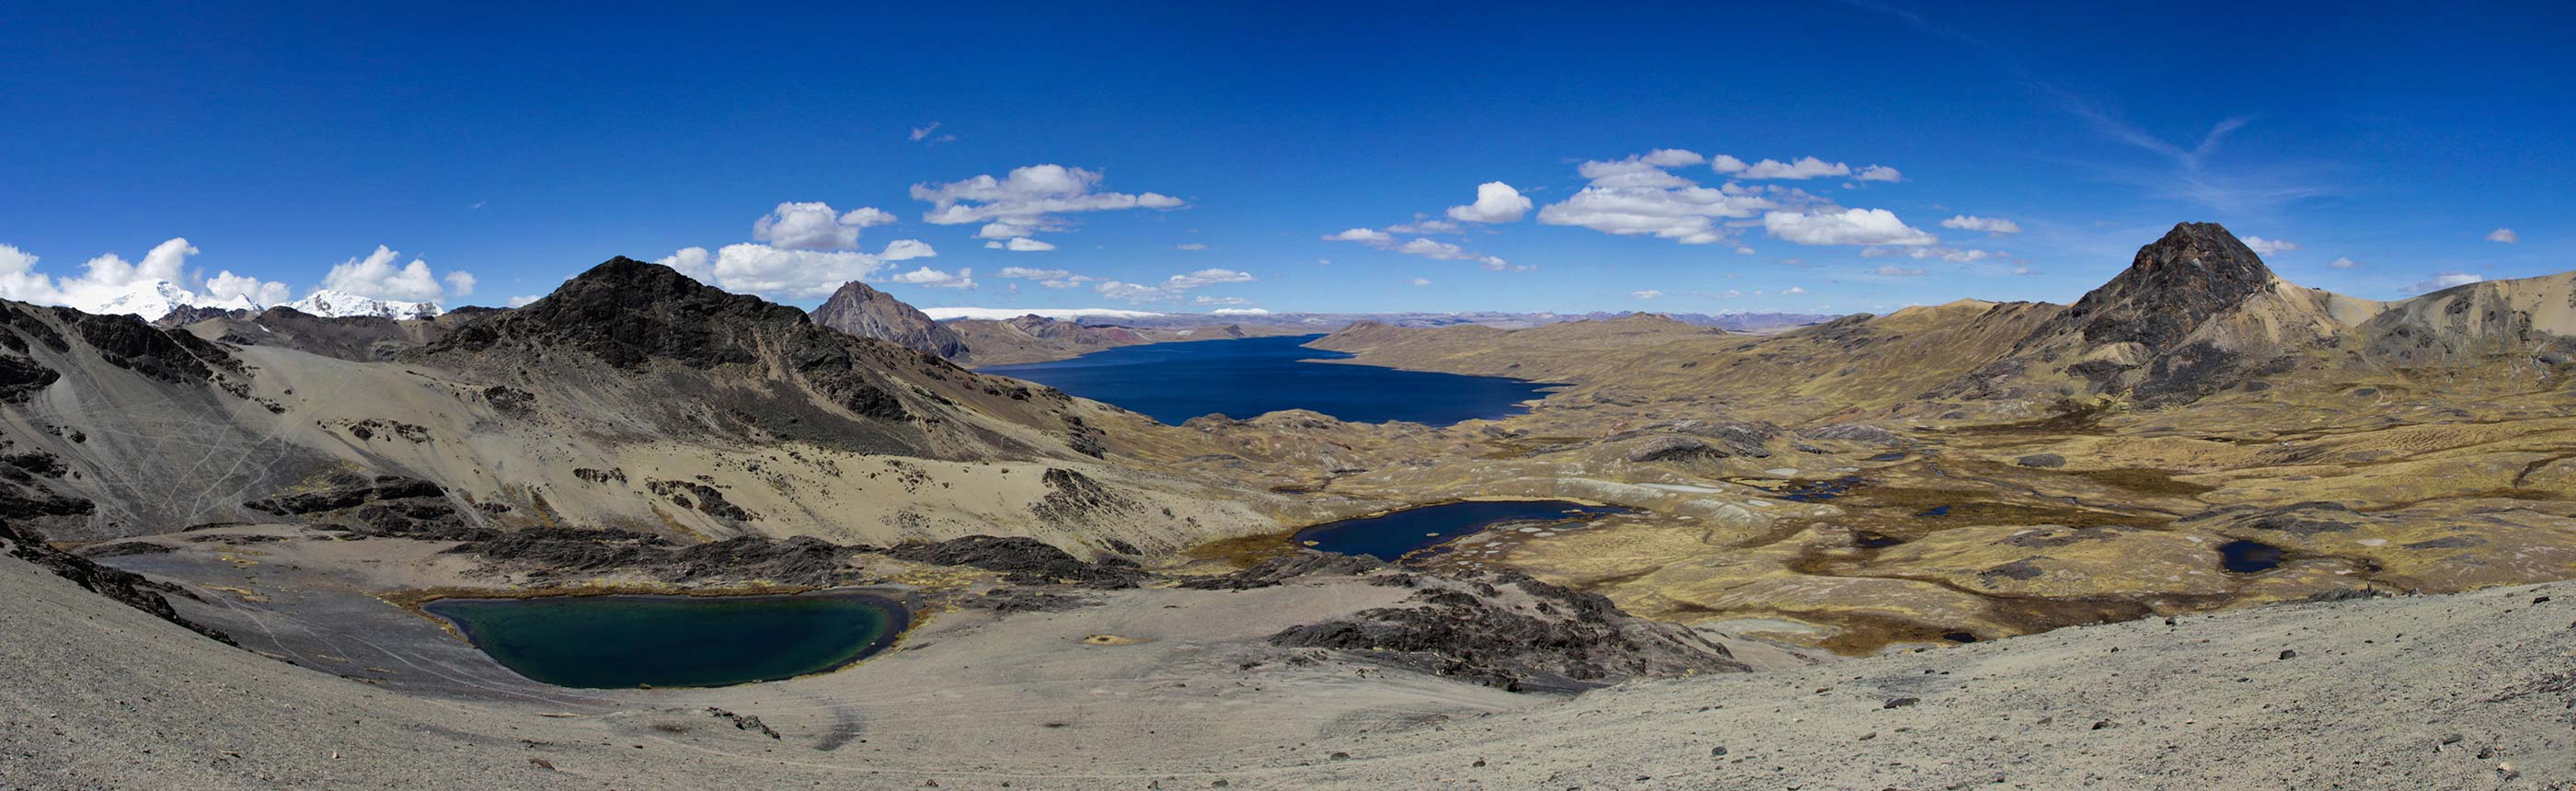 Ausangate Hike to Sibinacocha Lake